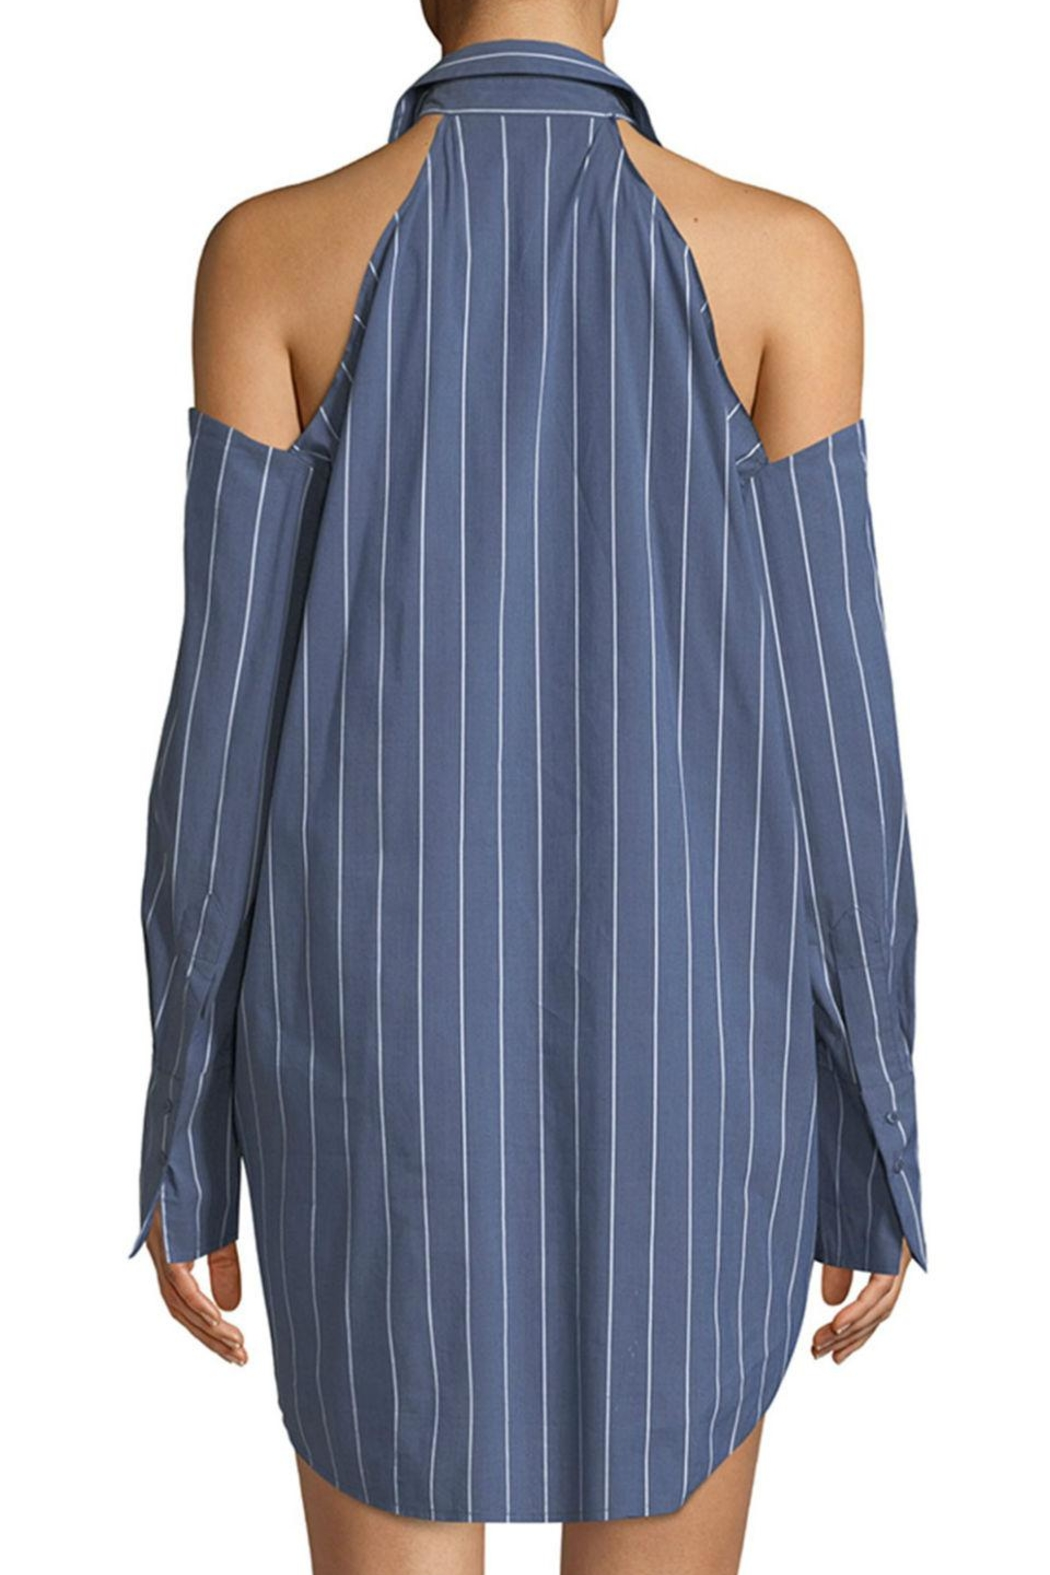 Kendall + Kylie Striped Tunic Mini-Dress - Front Full Image